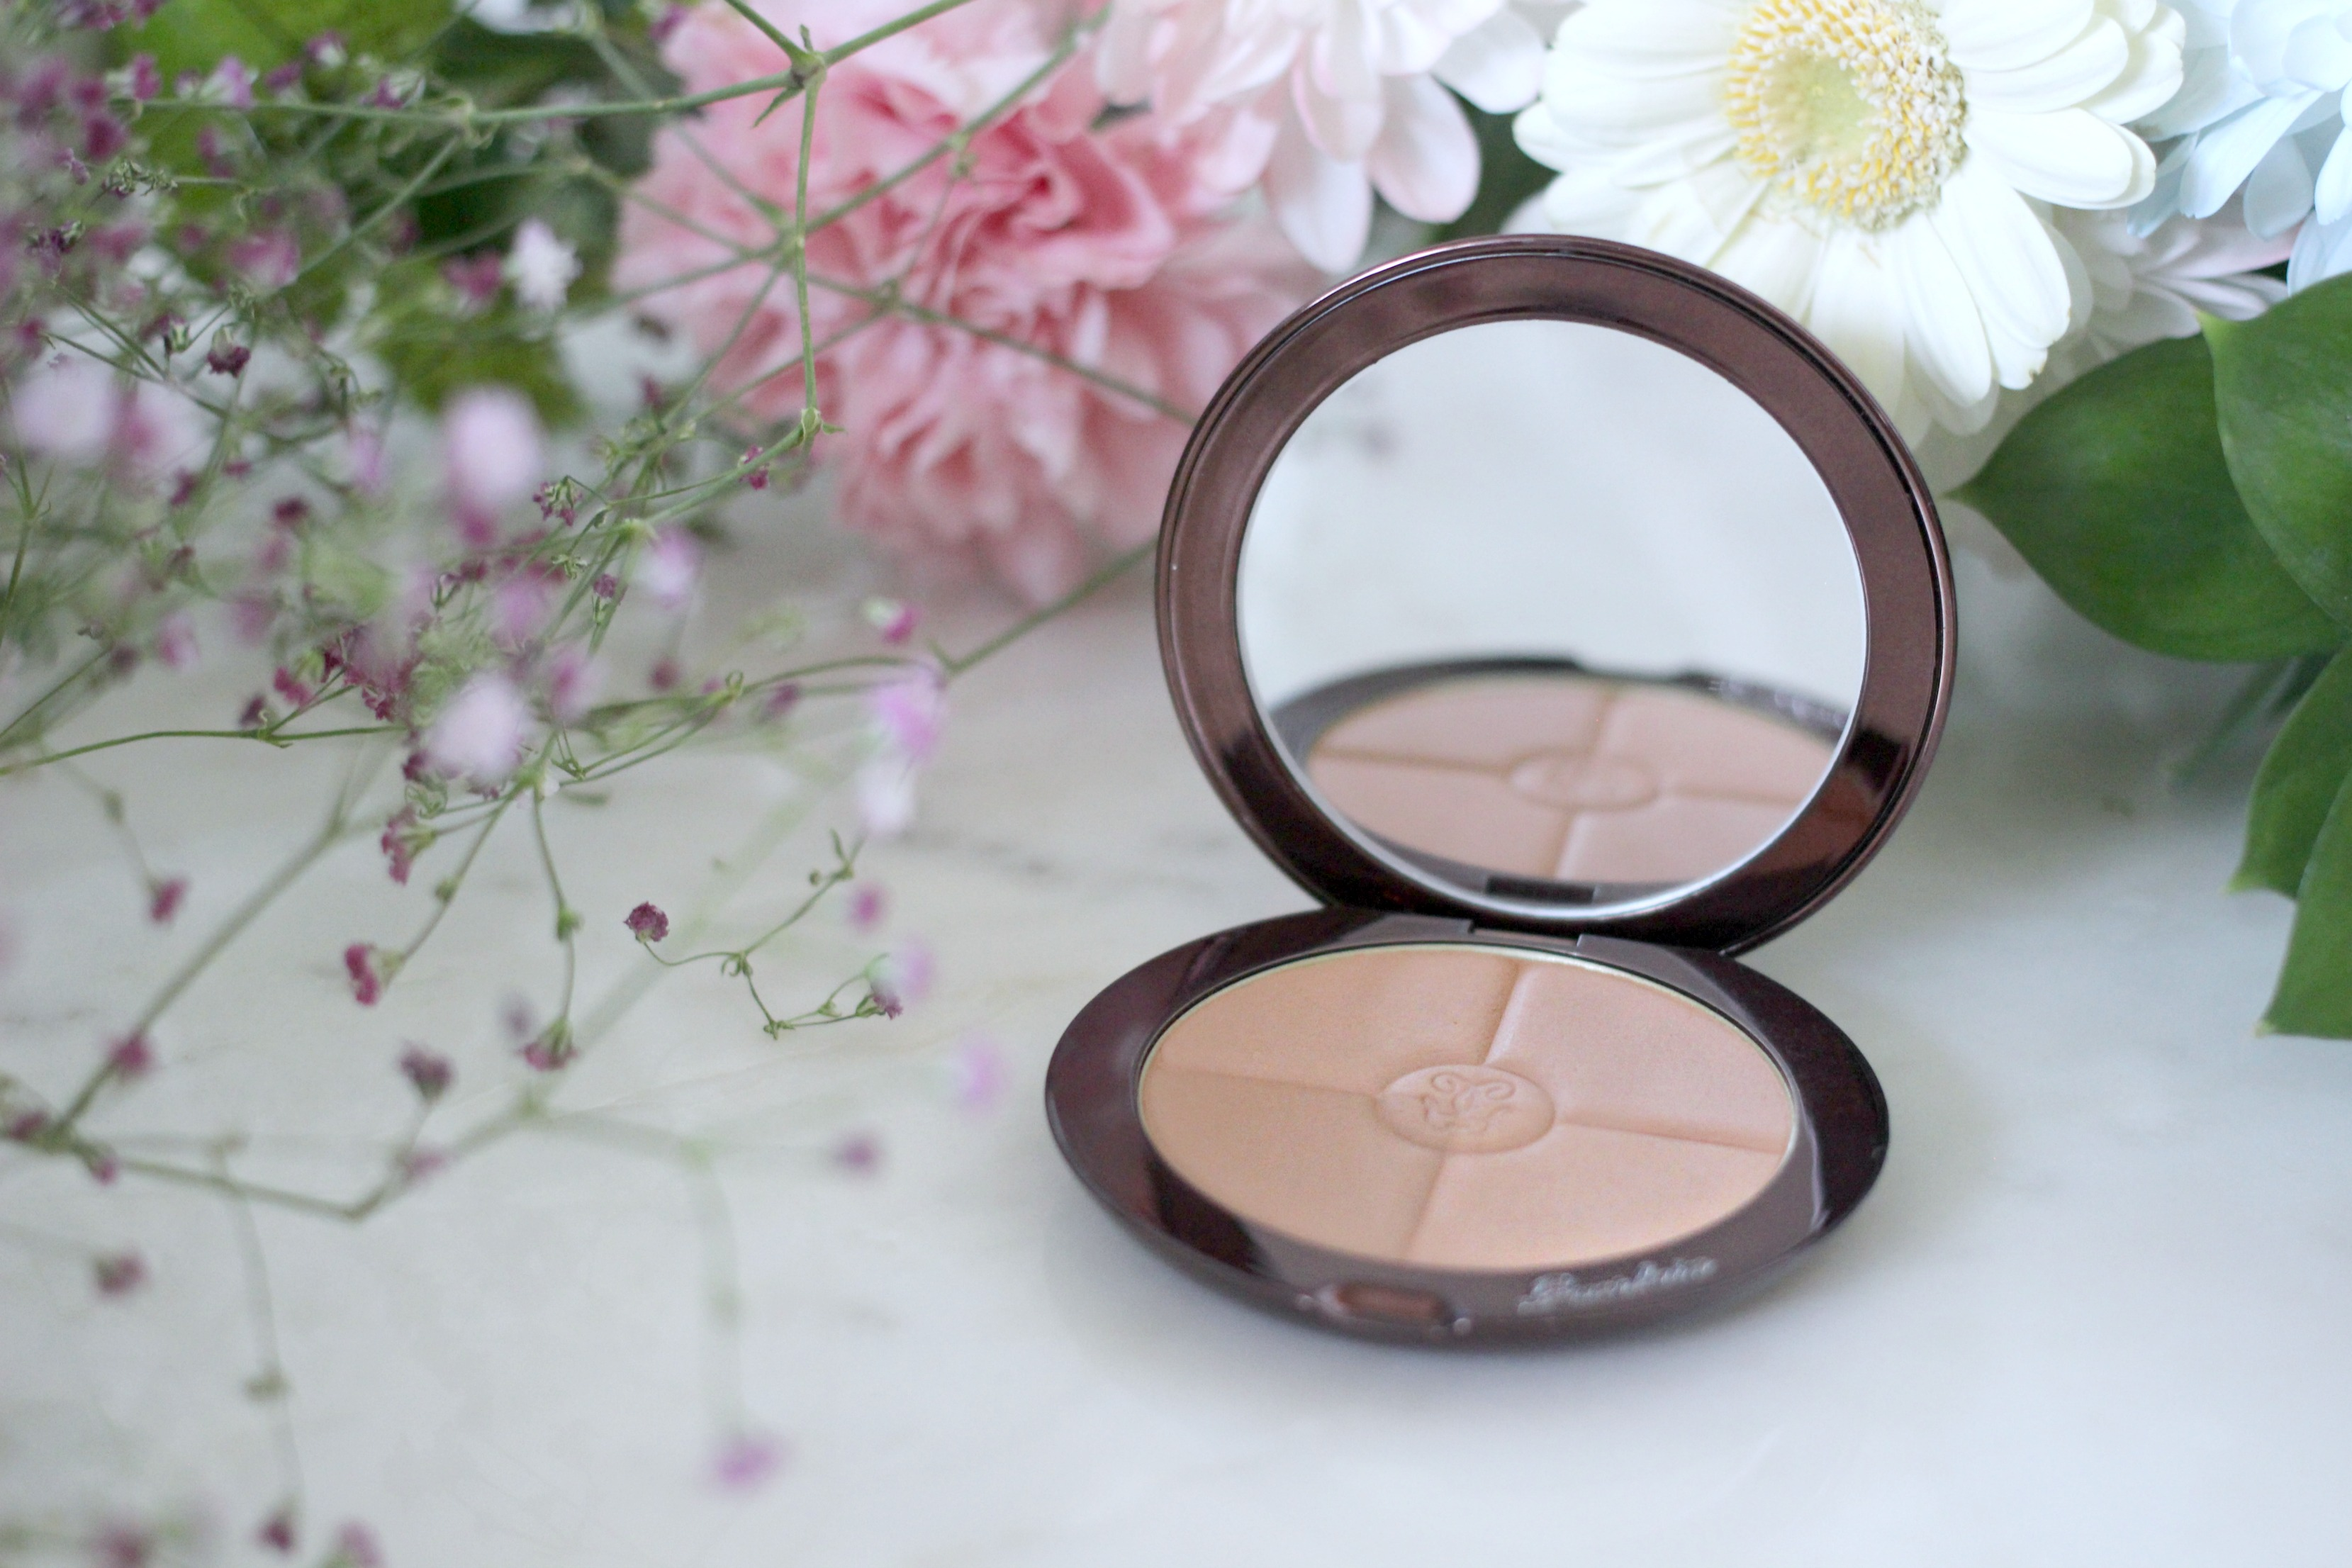 Guerlain Spring Summer Beauty Makeup Collection Review 4 Seasons Bronzer